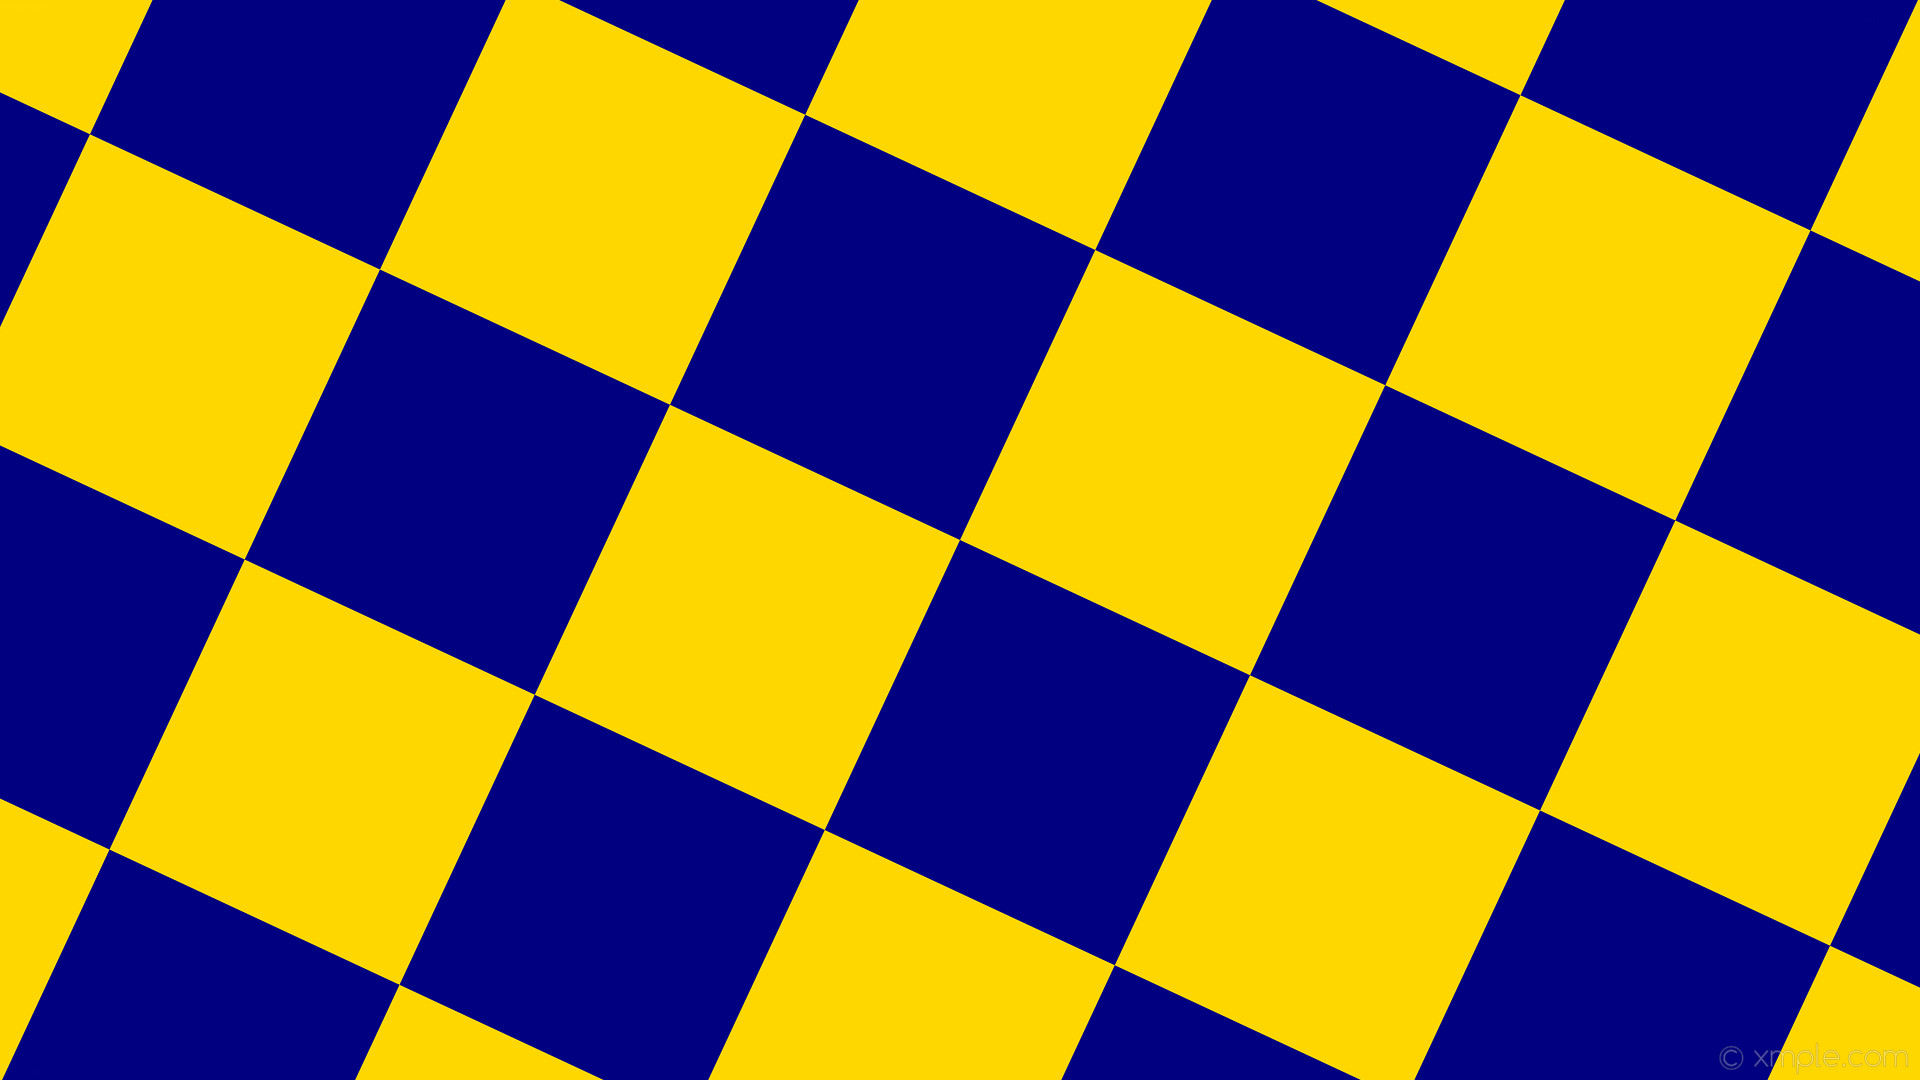 wallpaper squares yellow checkered blue gold navy #ffd700 #000080 diagonal  65° 320px